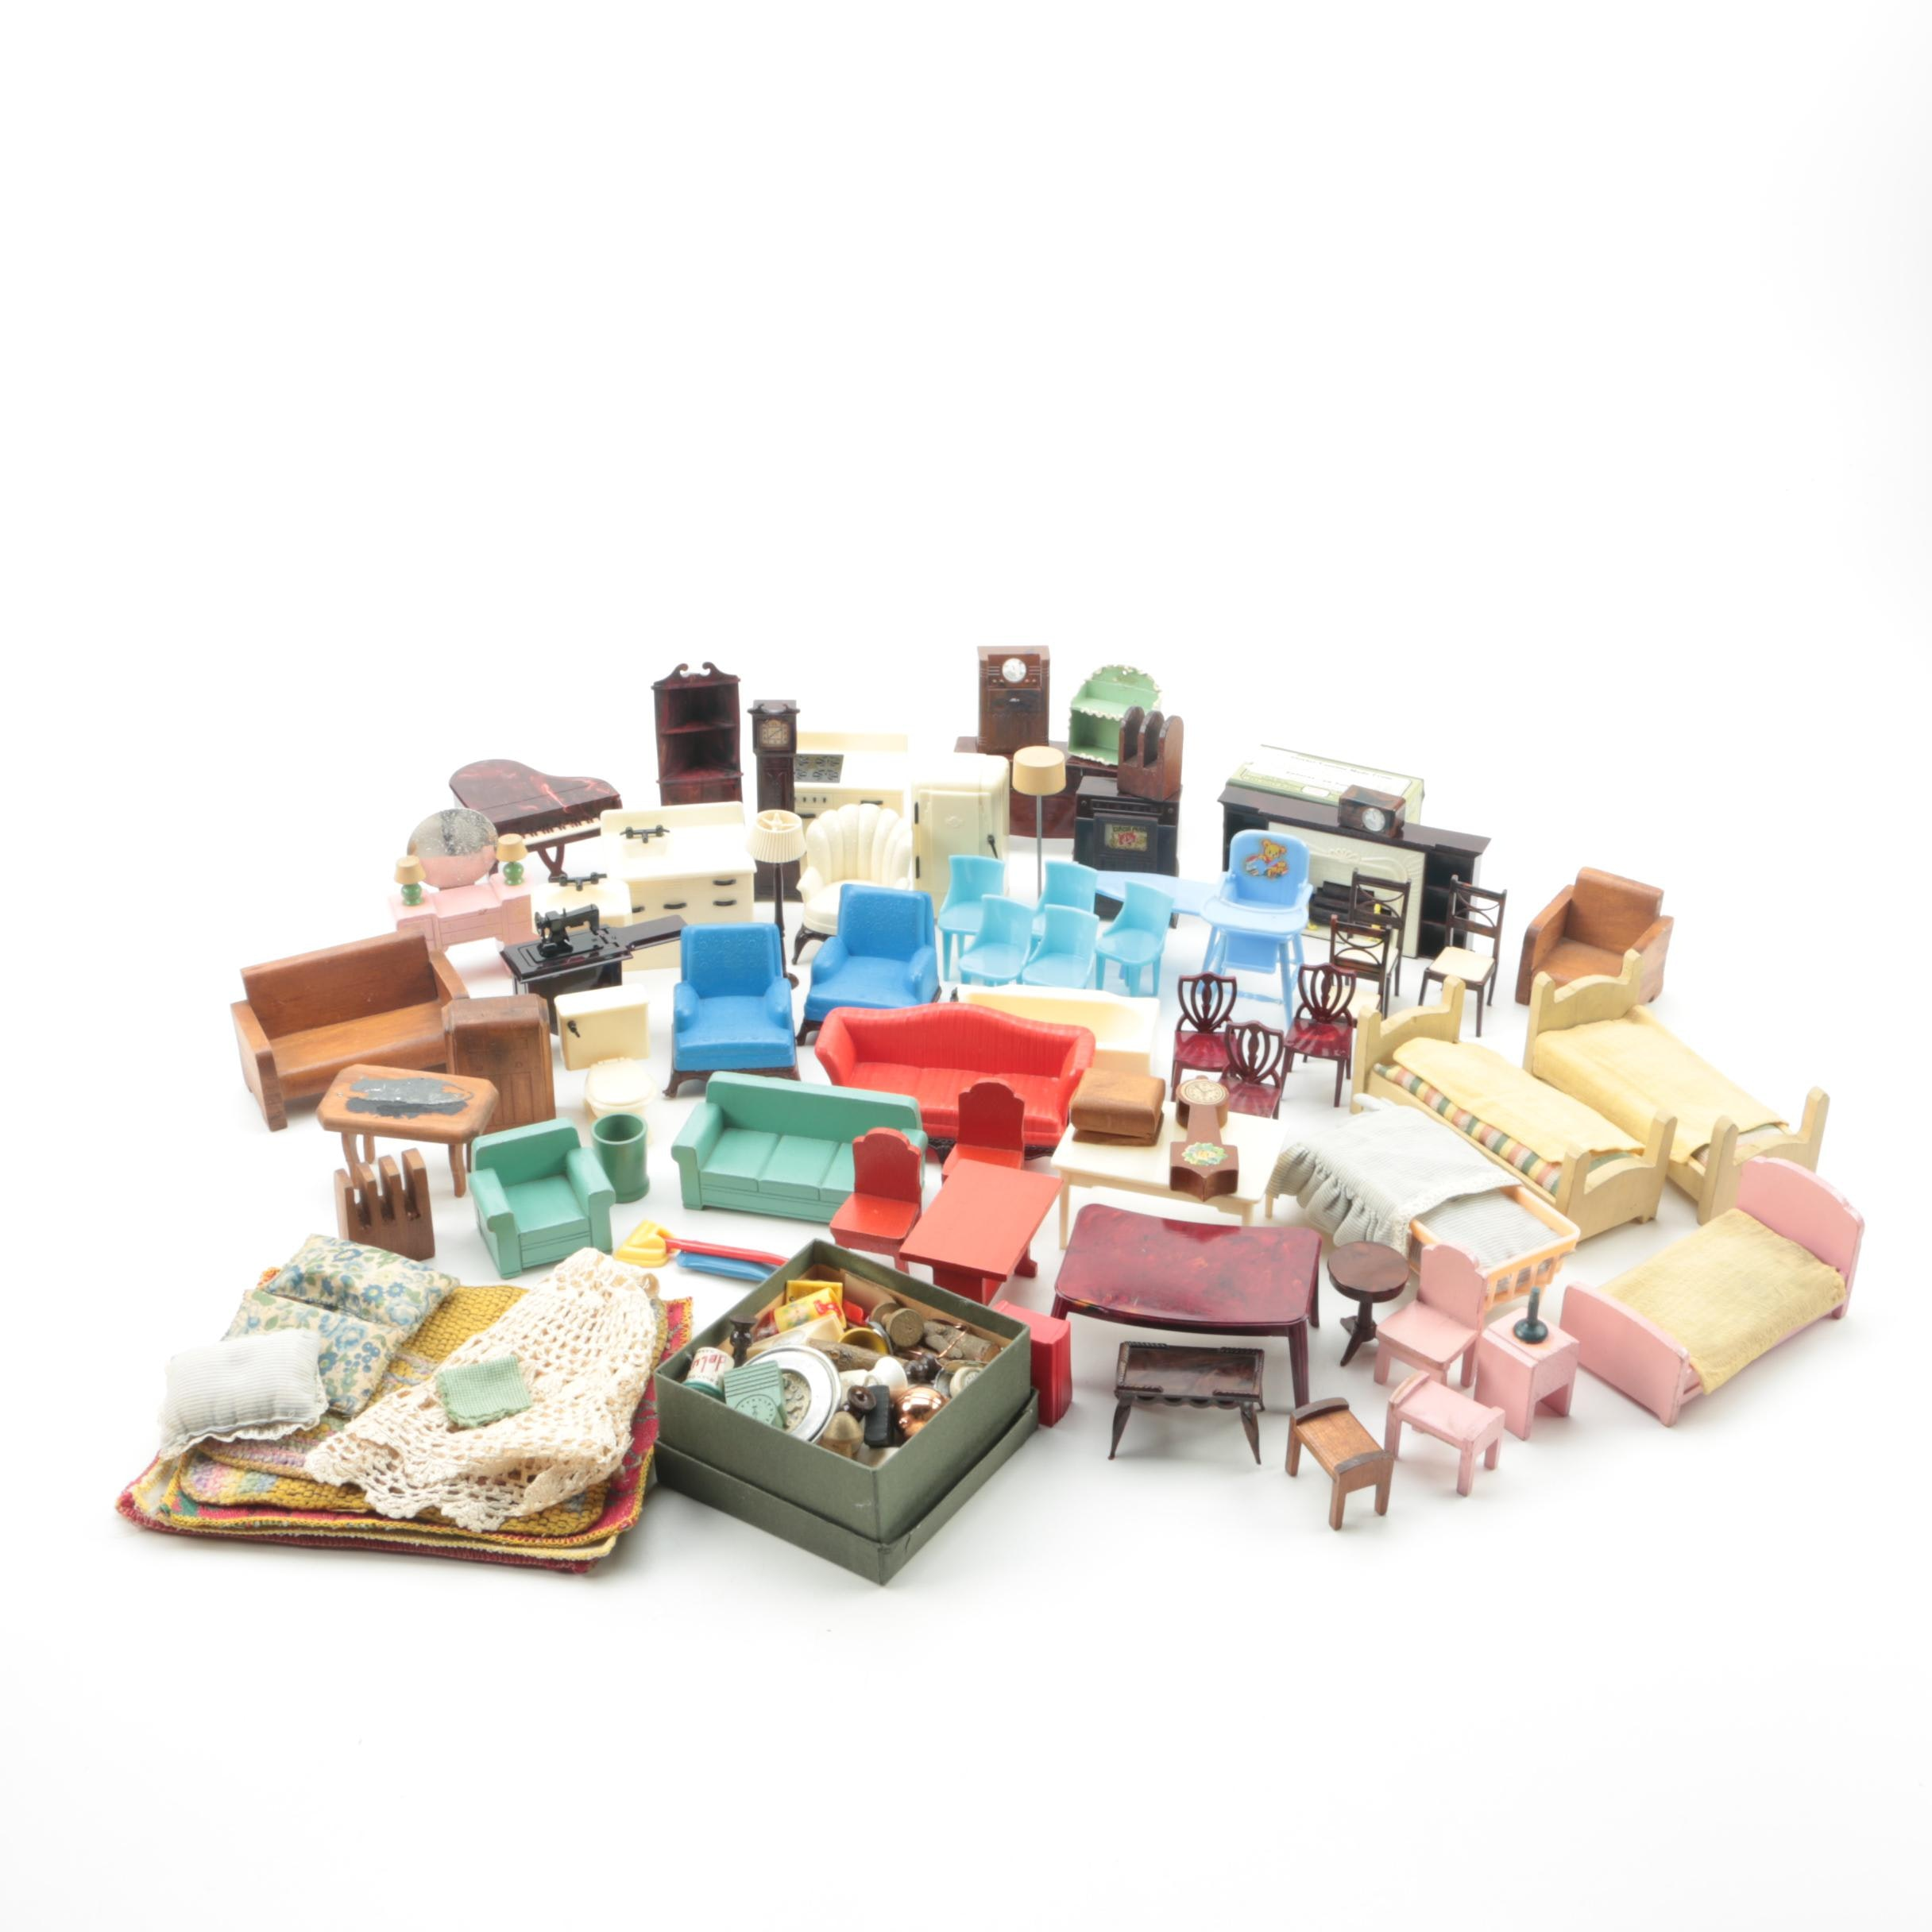 Vintage Dollhouse Furniture and Accessories